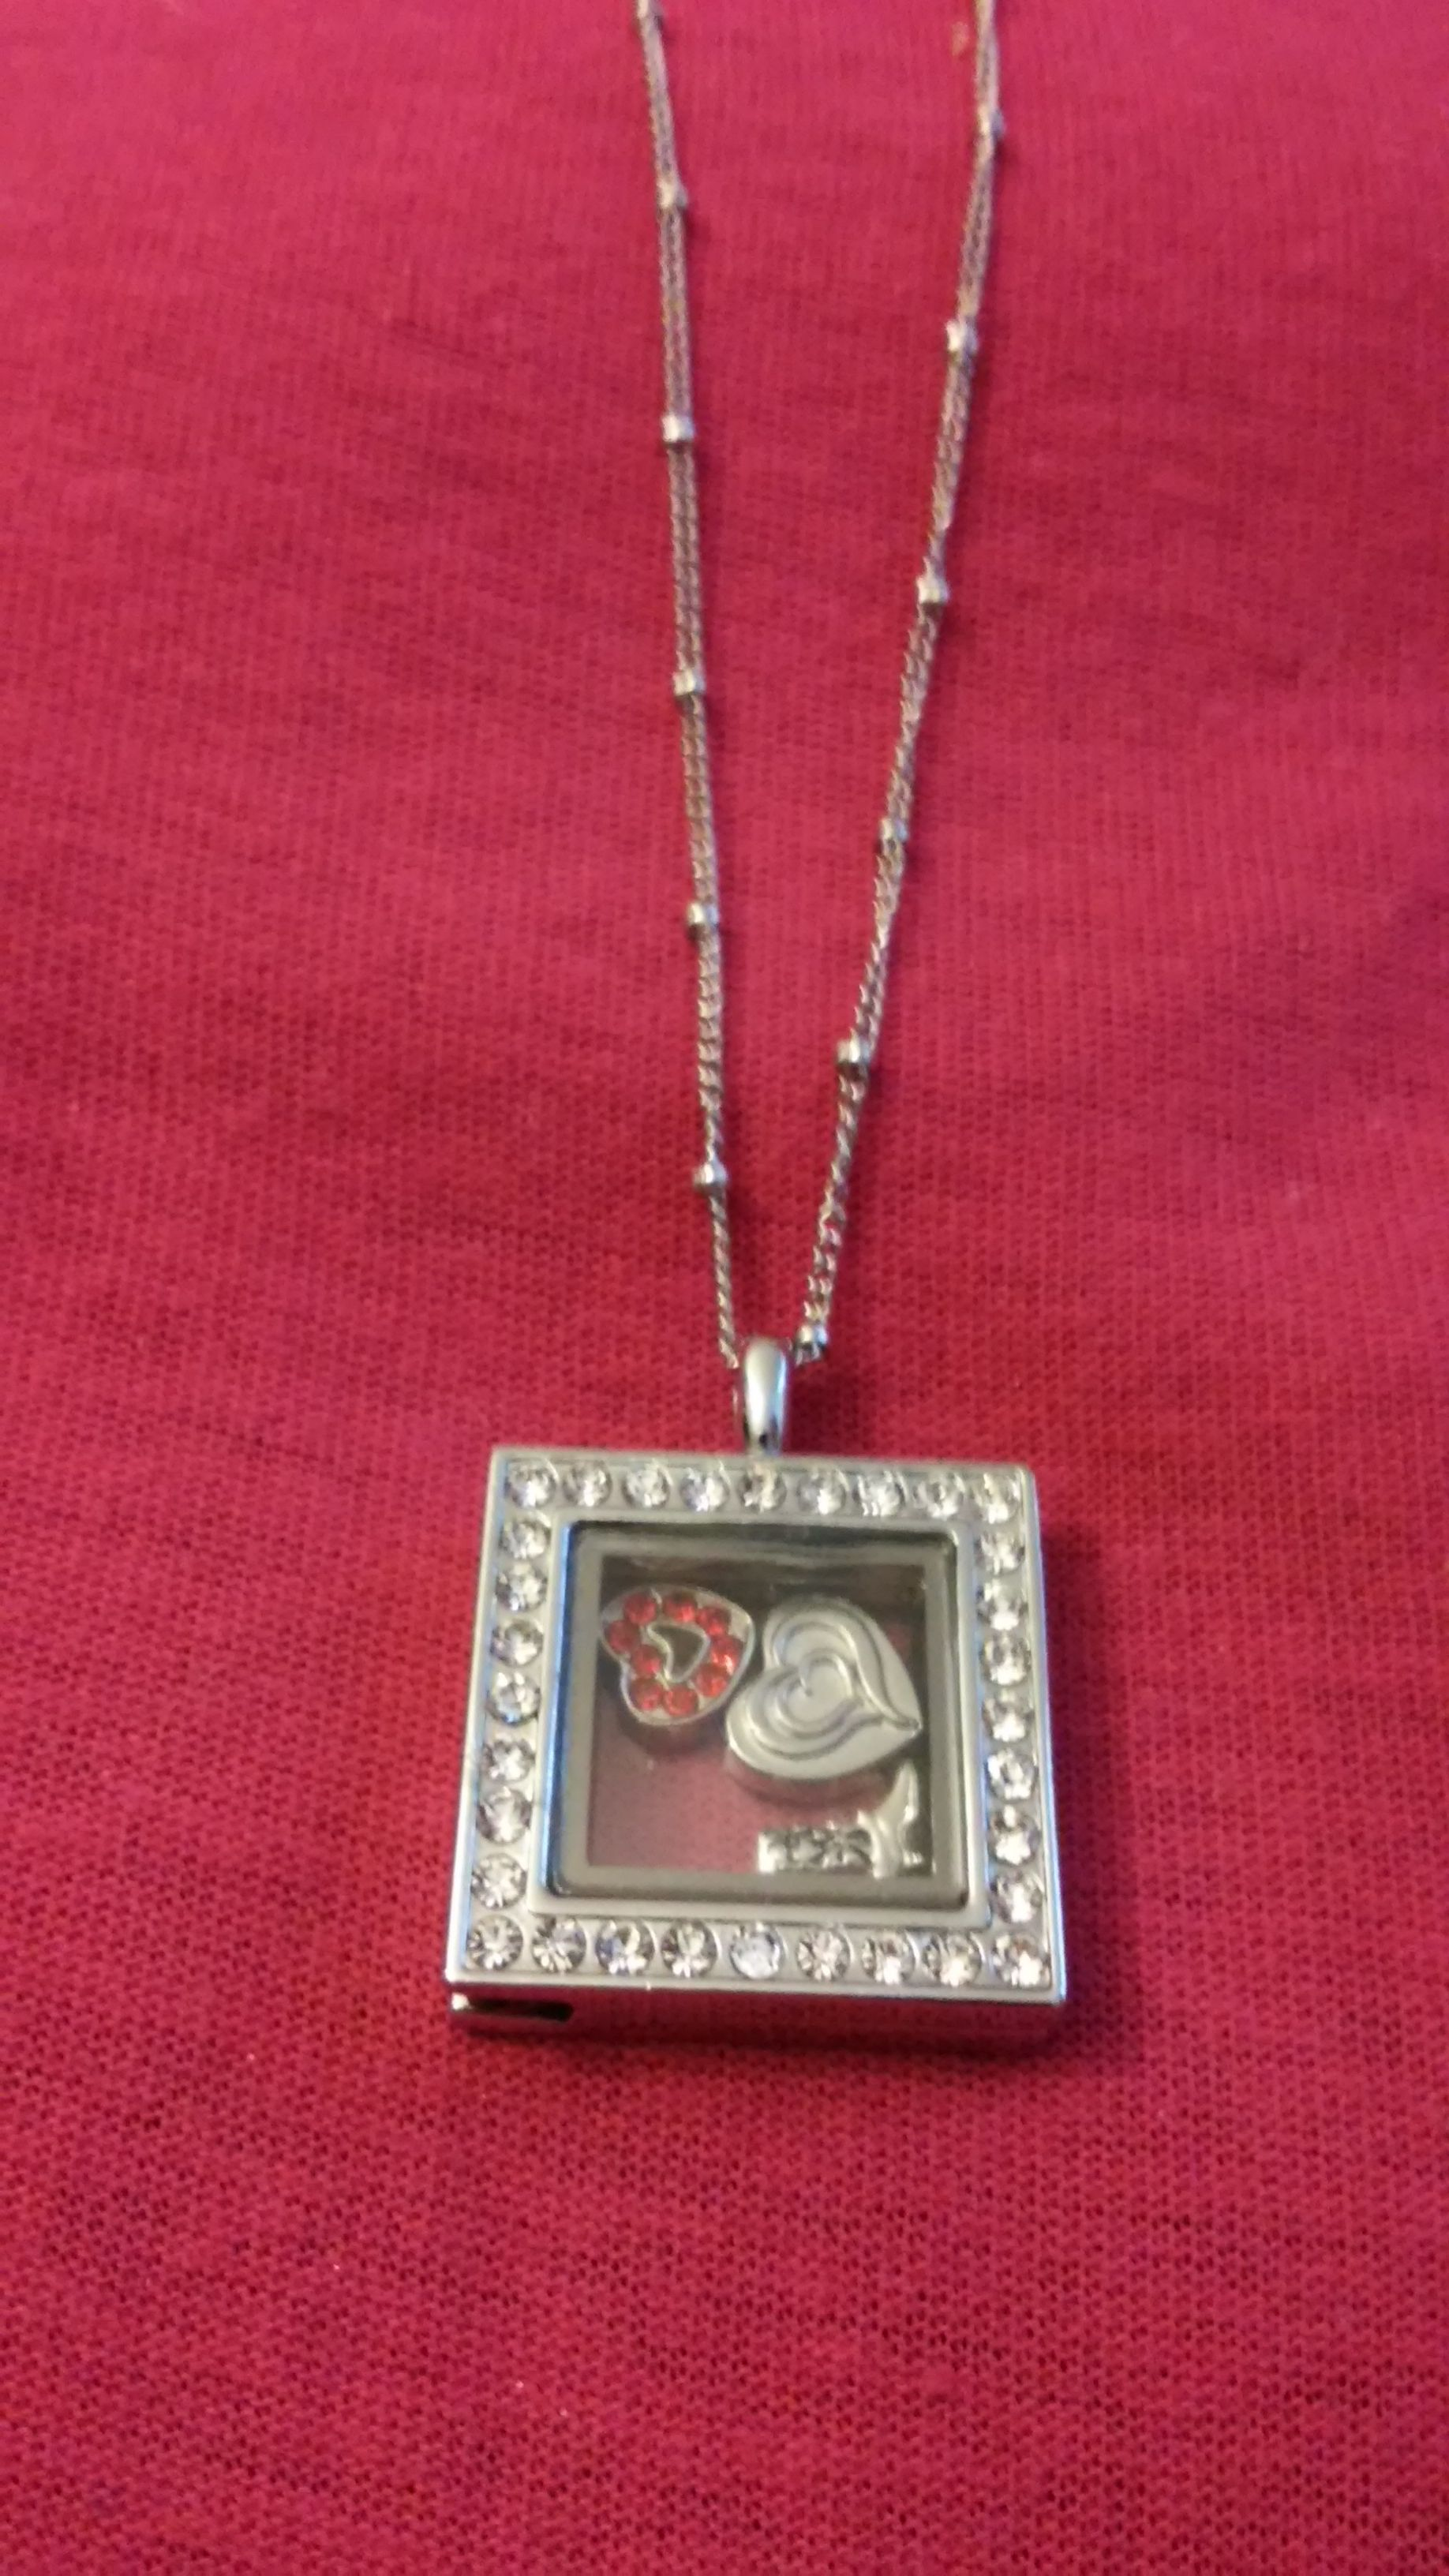 silver stone sq locket with 2 charms, free ohd charm included and 18in ball chain $20 message: milagrosourheartsdesire@gmail.com